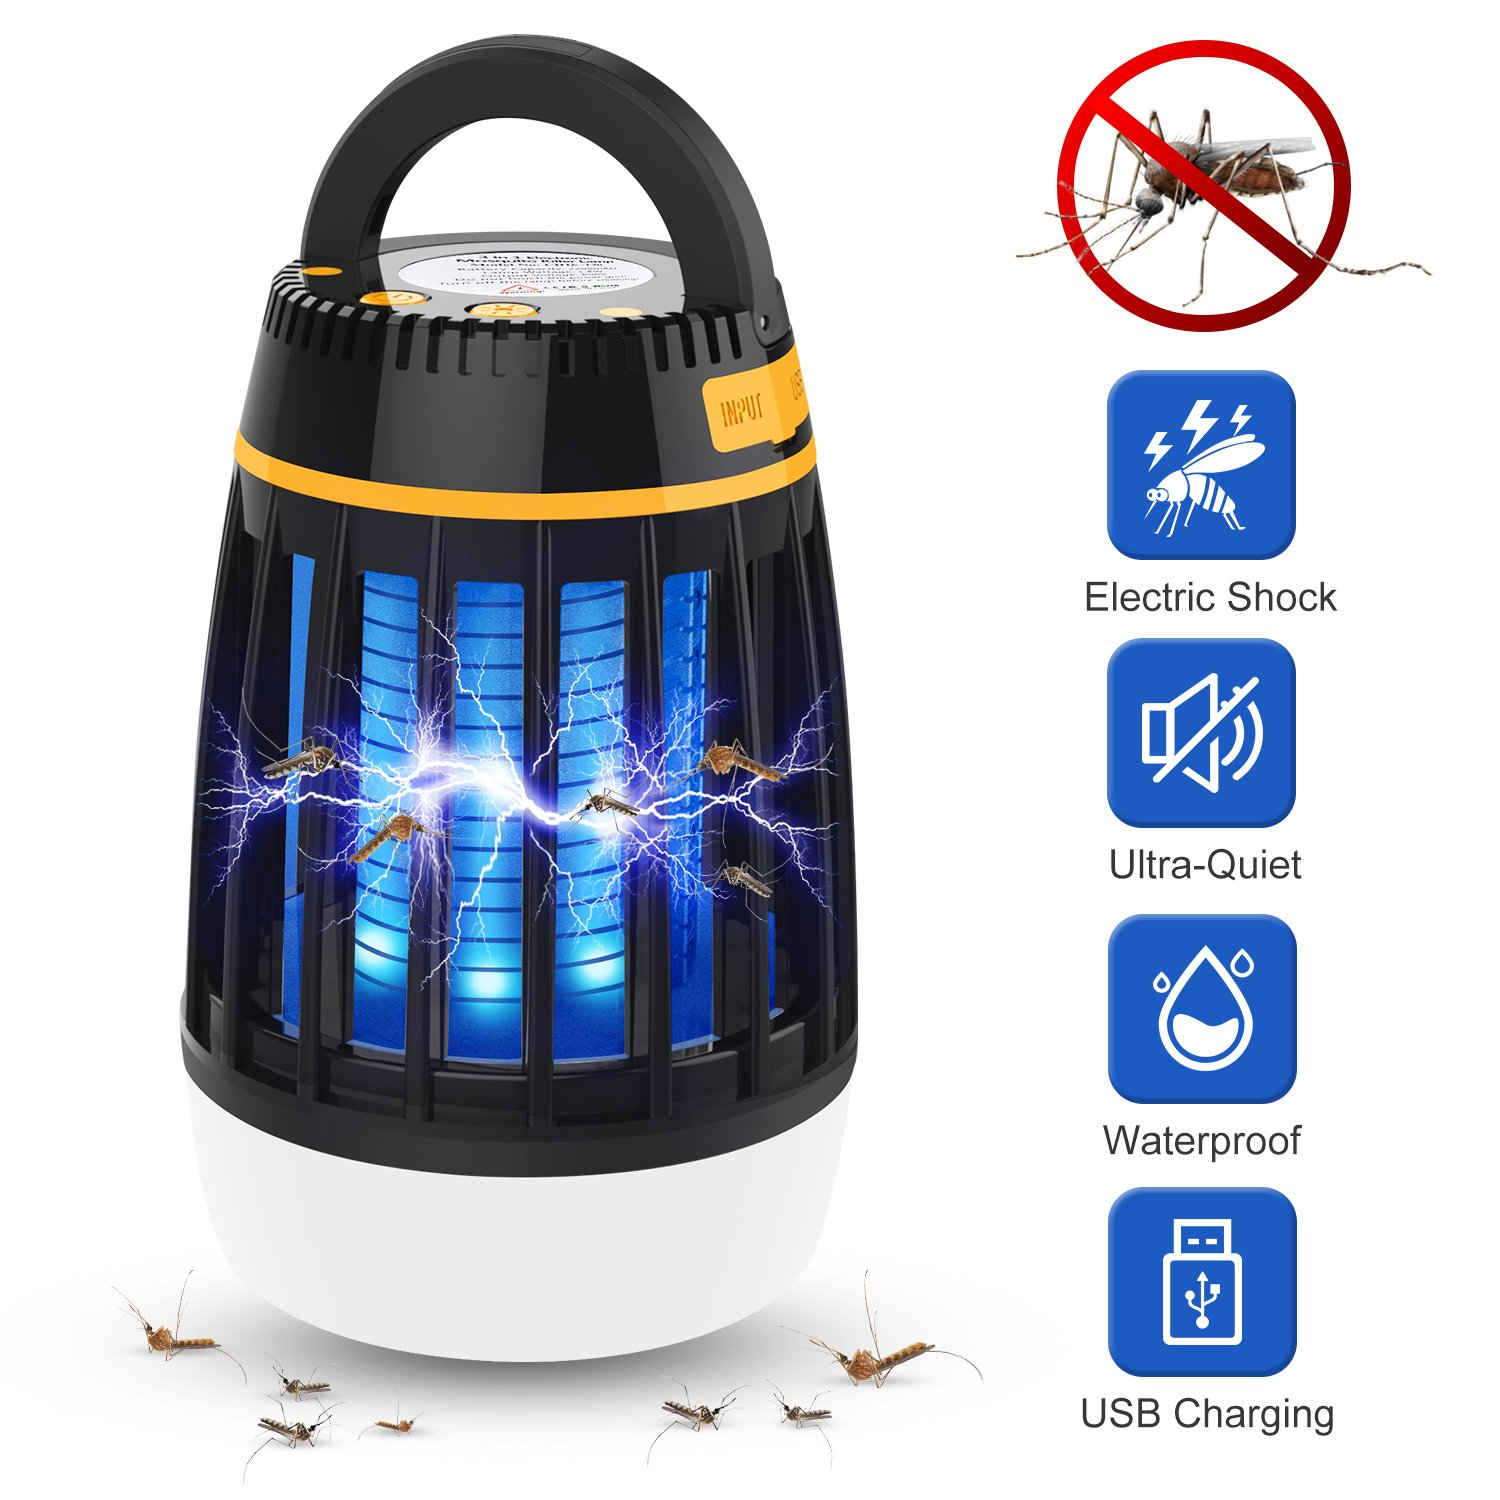 WloveTravel Bug Zapper Outdoor 3 in 1 Camping Light & Mosquito Zapper & Emergency Power Bank-Rechargeable Waterproof Camping Gear Accessories